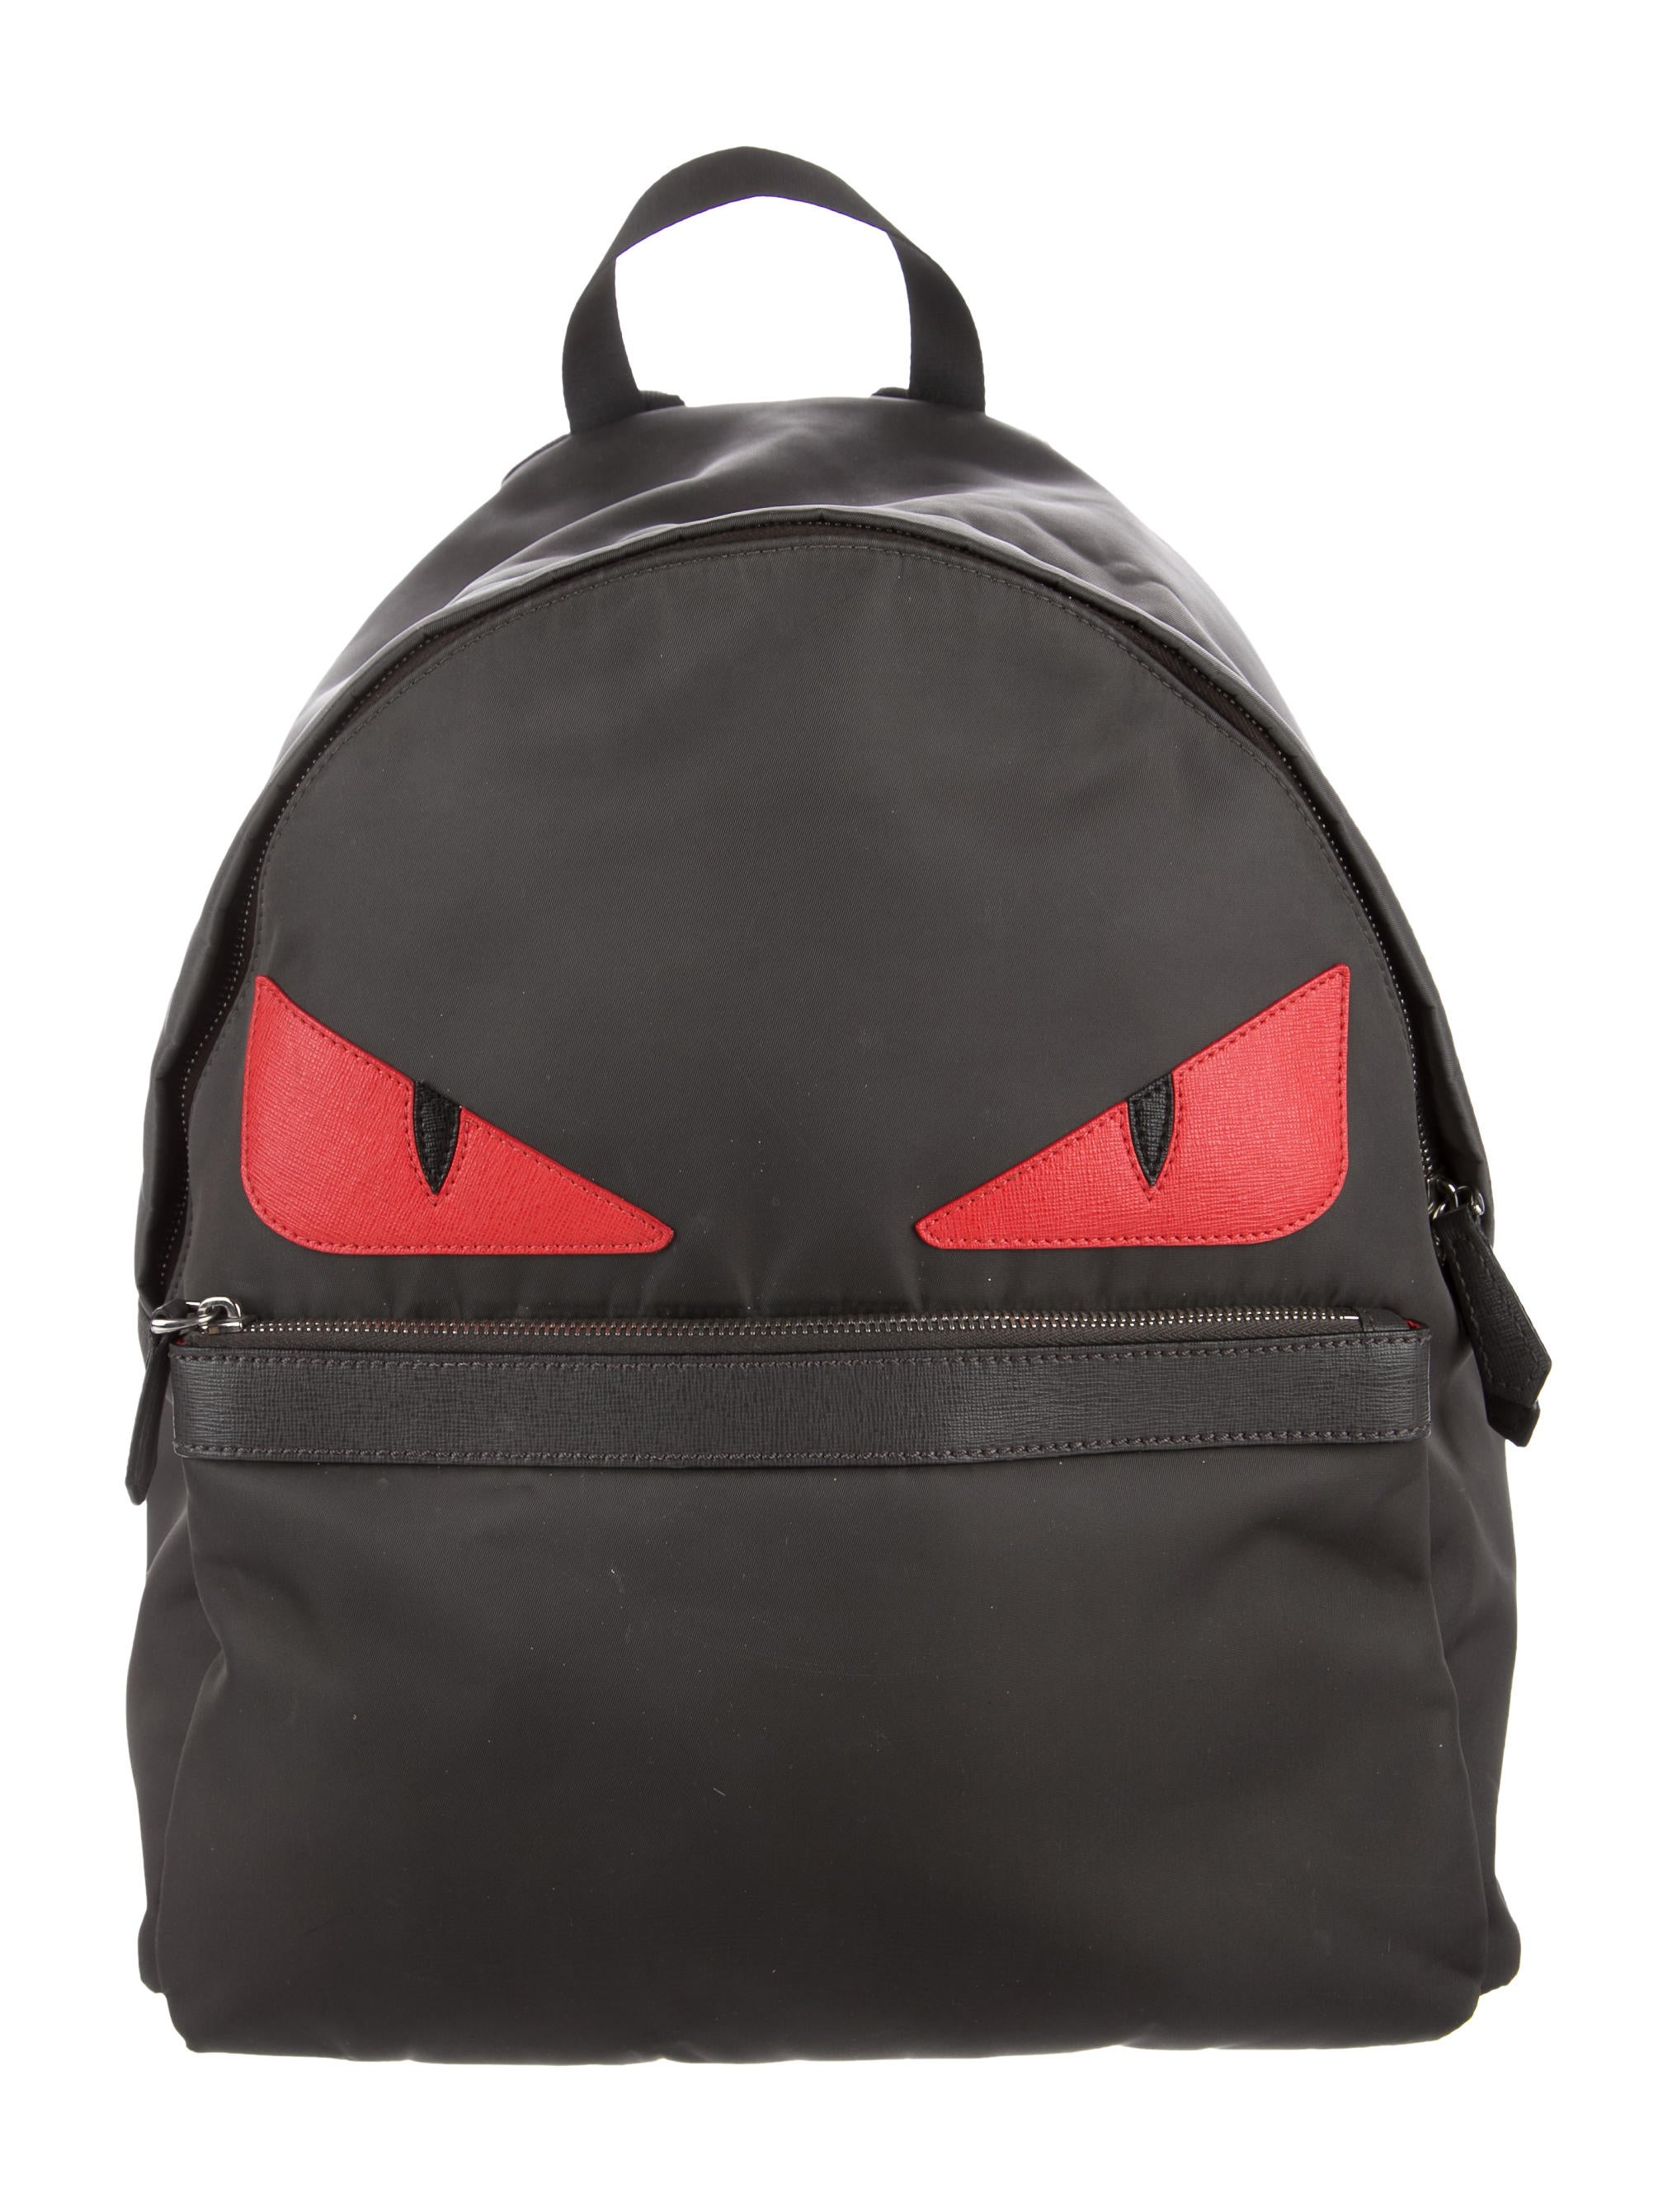 Fendi Monster Leather-Trimmed Backpack - Bags - FEN64954 | The ...